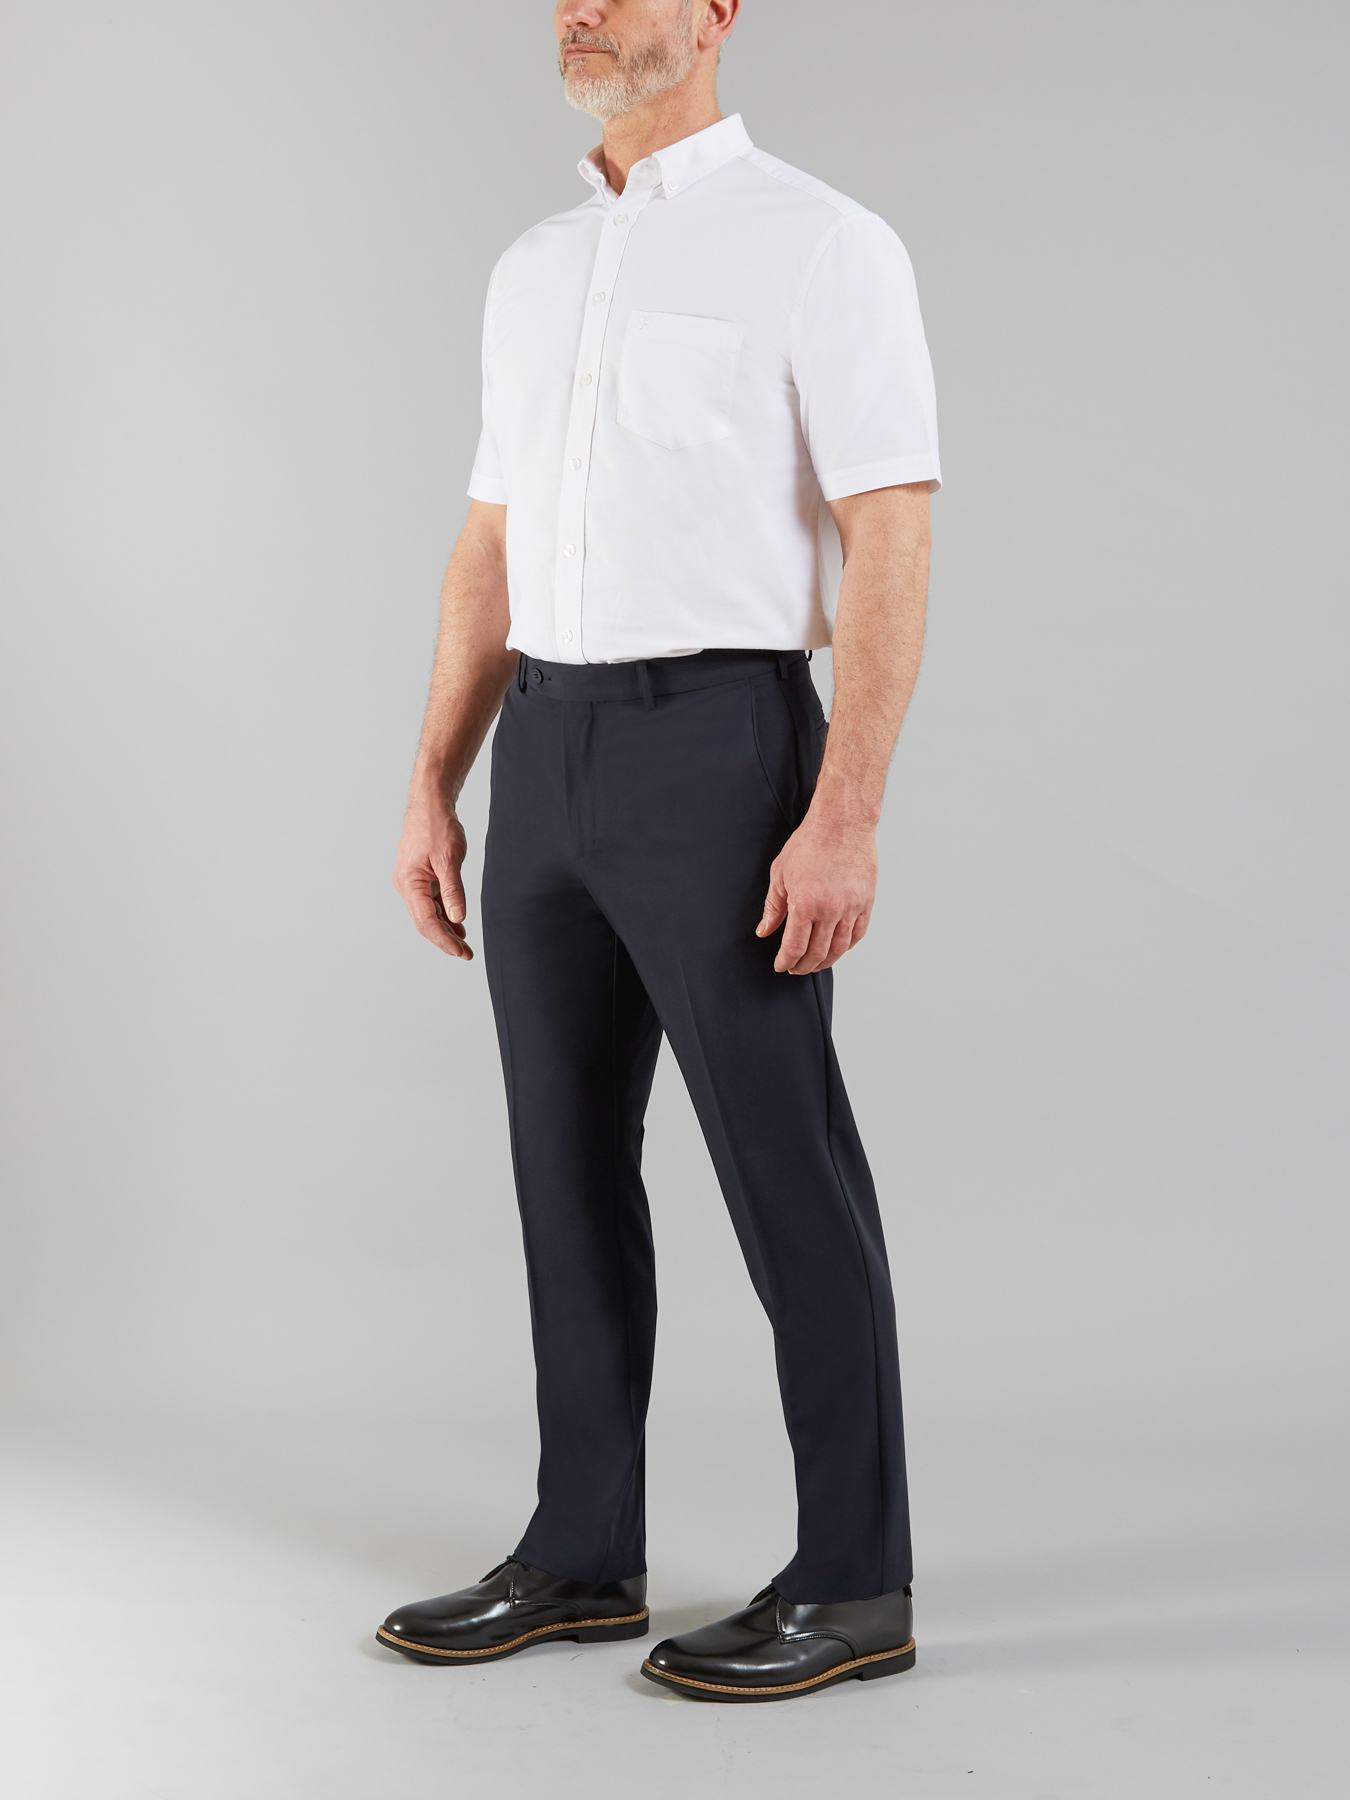 Farah Vintage Navy The roachman 4 way stretch trousers